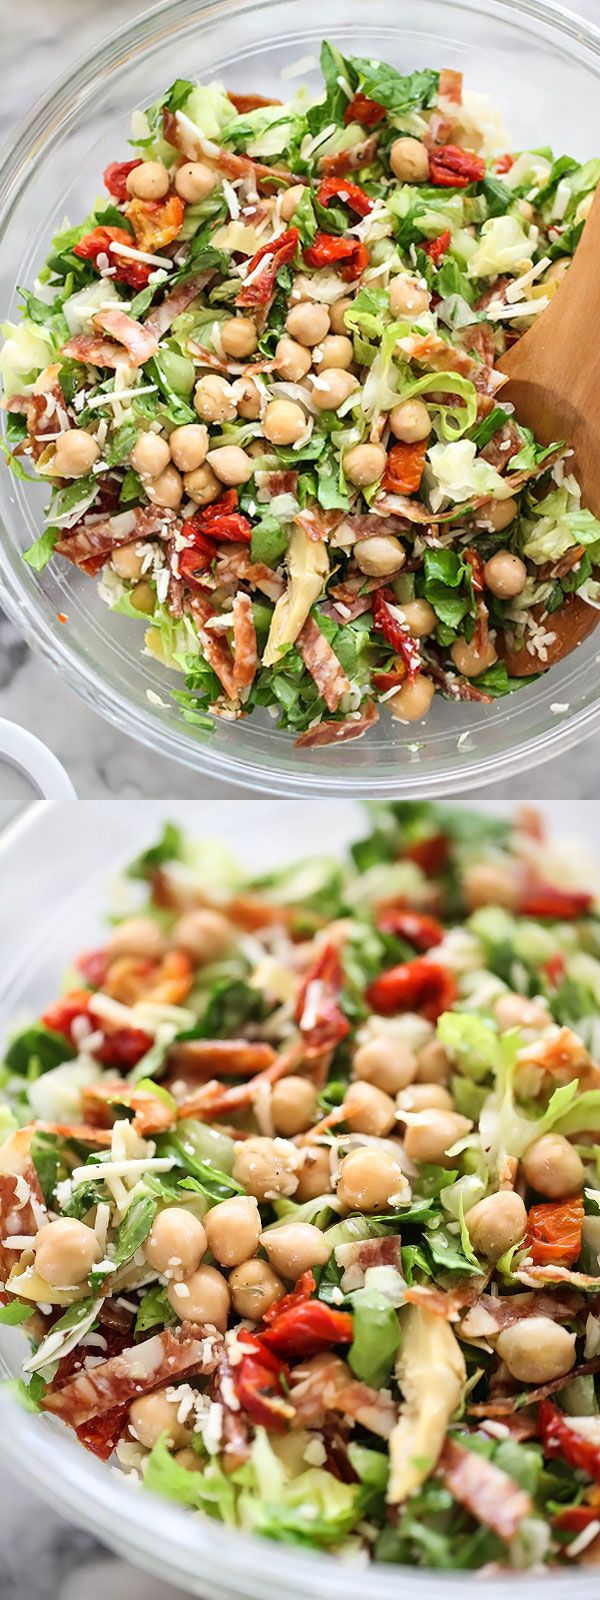 This salad is based on the famous La Scala salad in Los Angeles with the BEST dressing topping garbanzo beans, salami, artichoke hearts and sun dried tomatoes. It's one of my absolute favorites any time of year.   foodiecrush.com